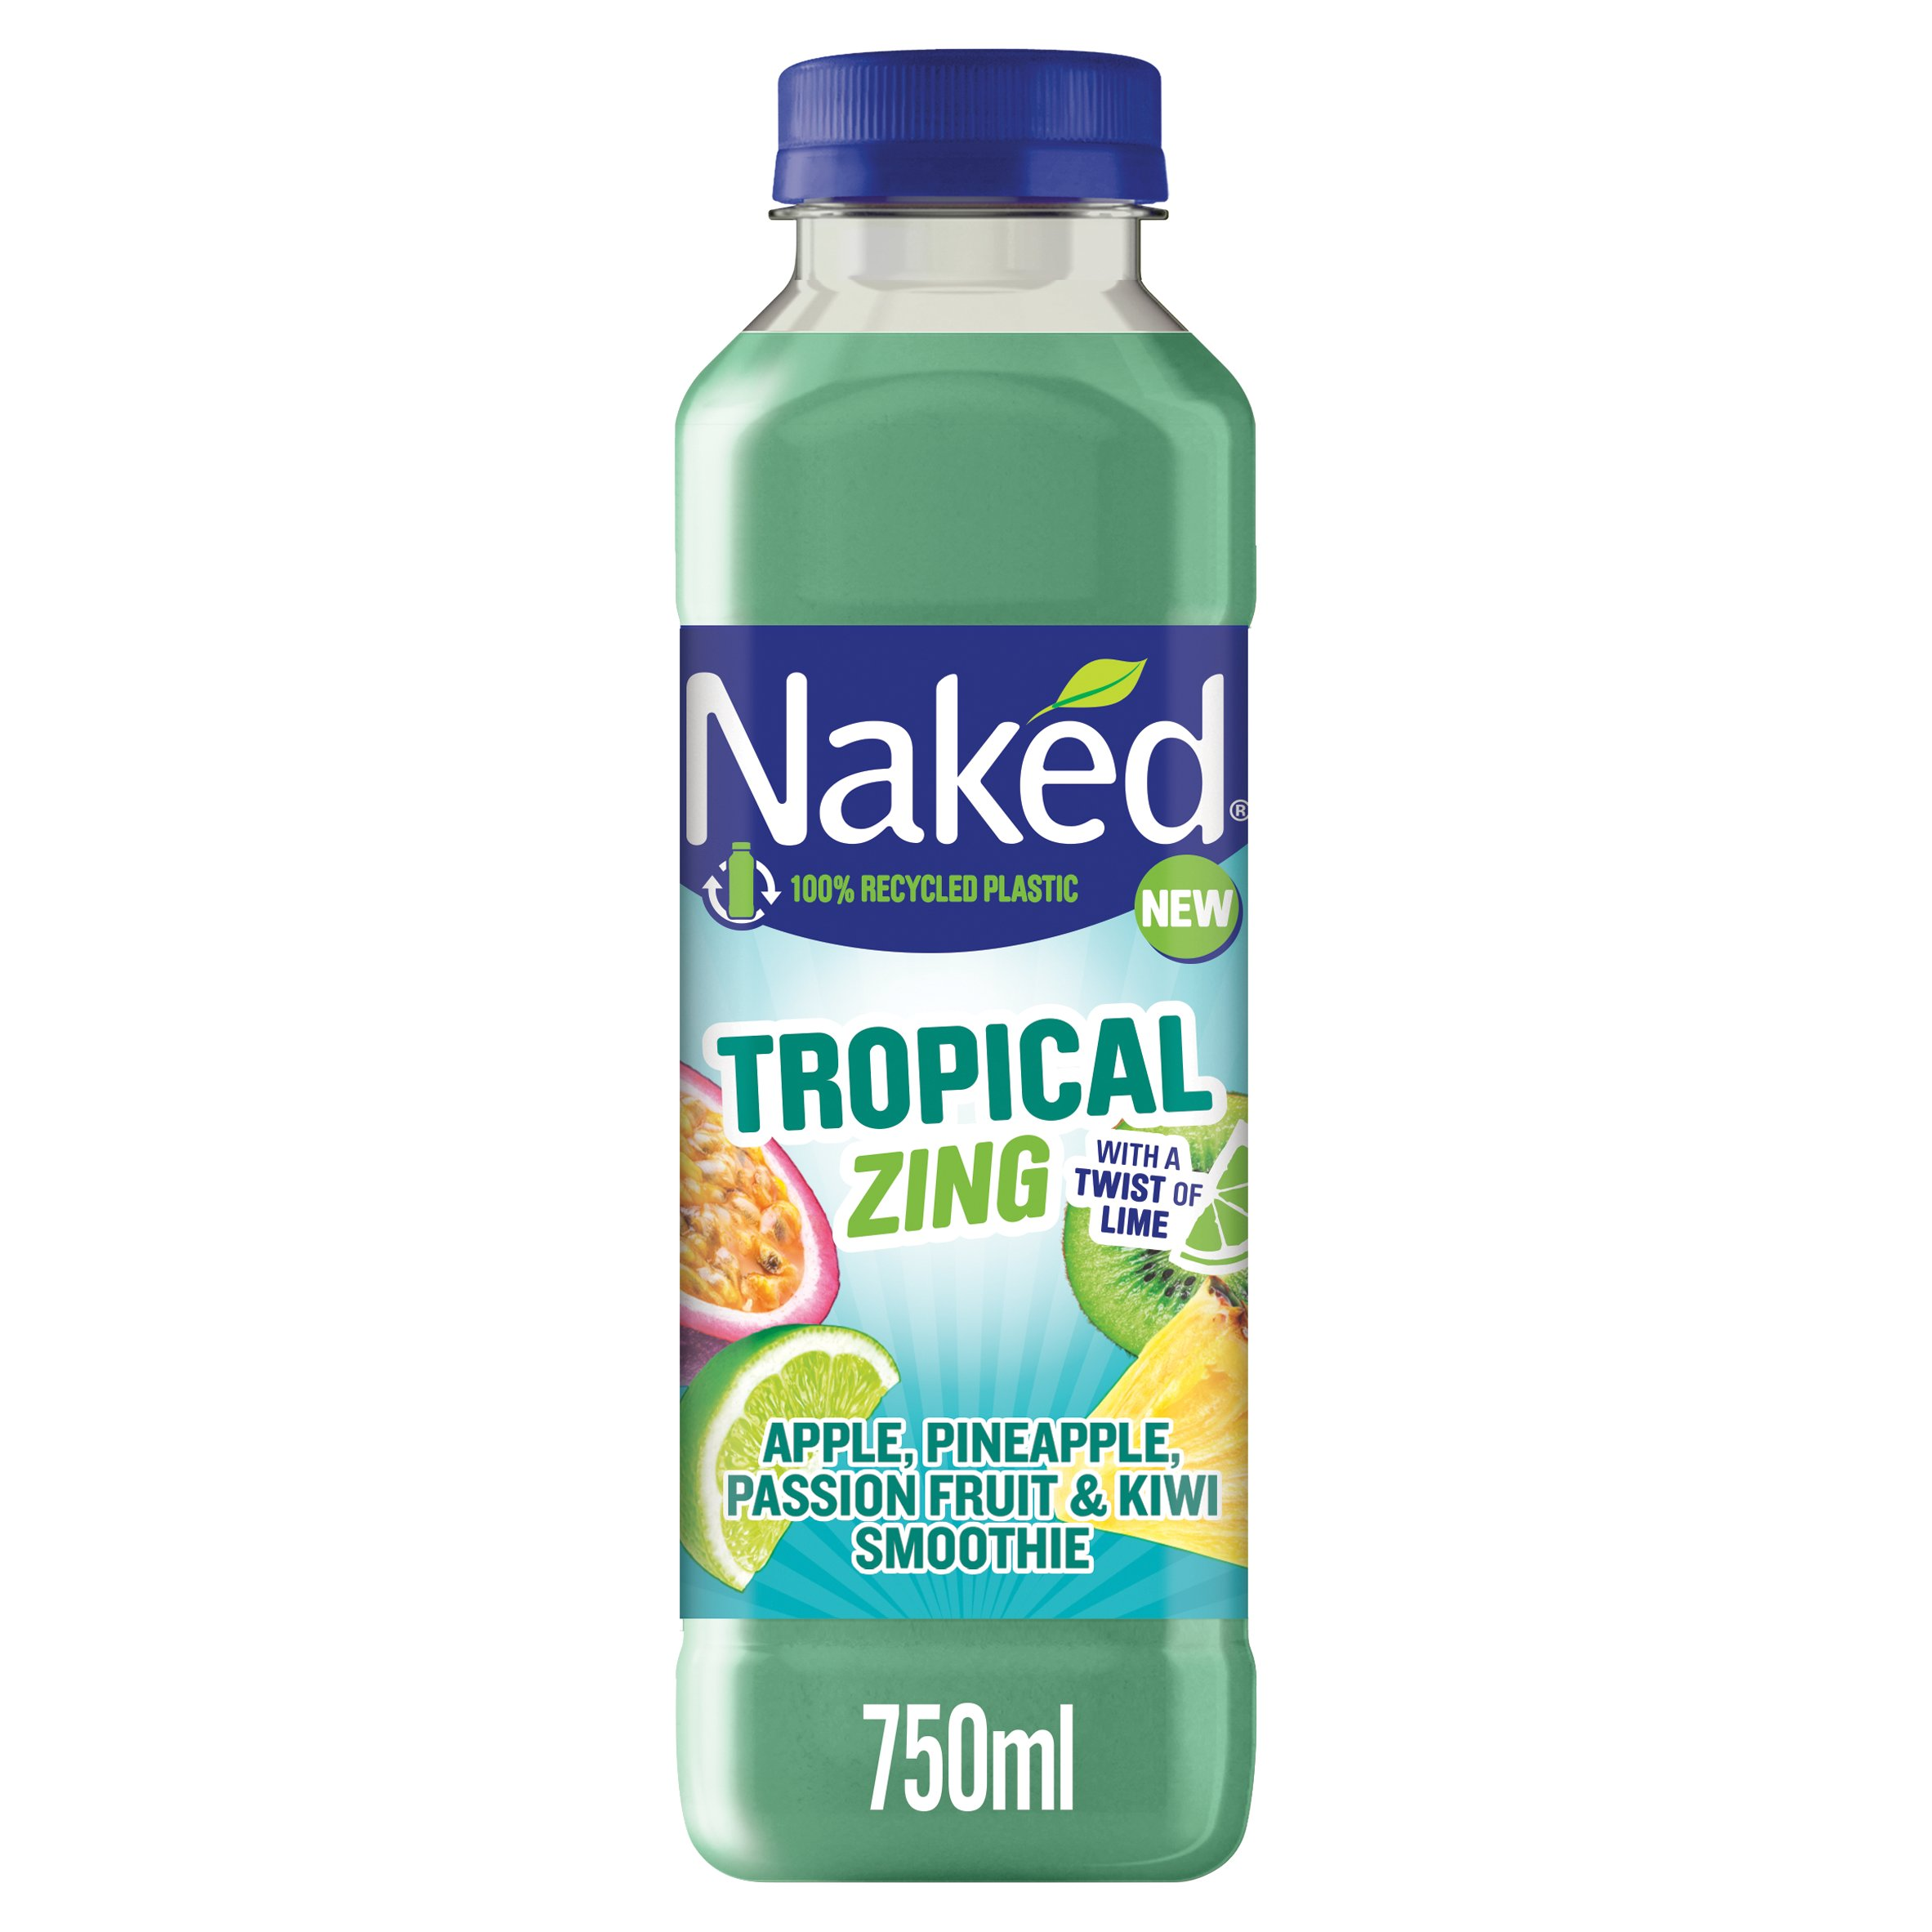 Naked Tropical Zing Smoothie 750Ml